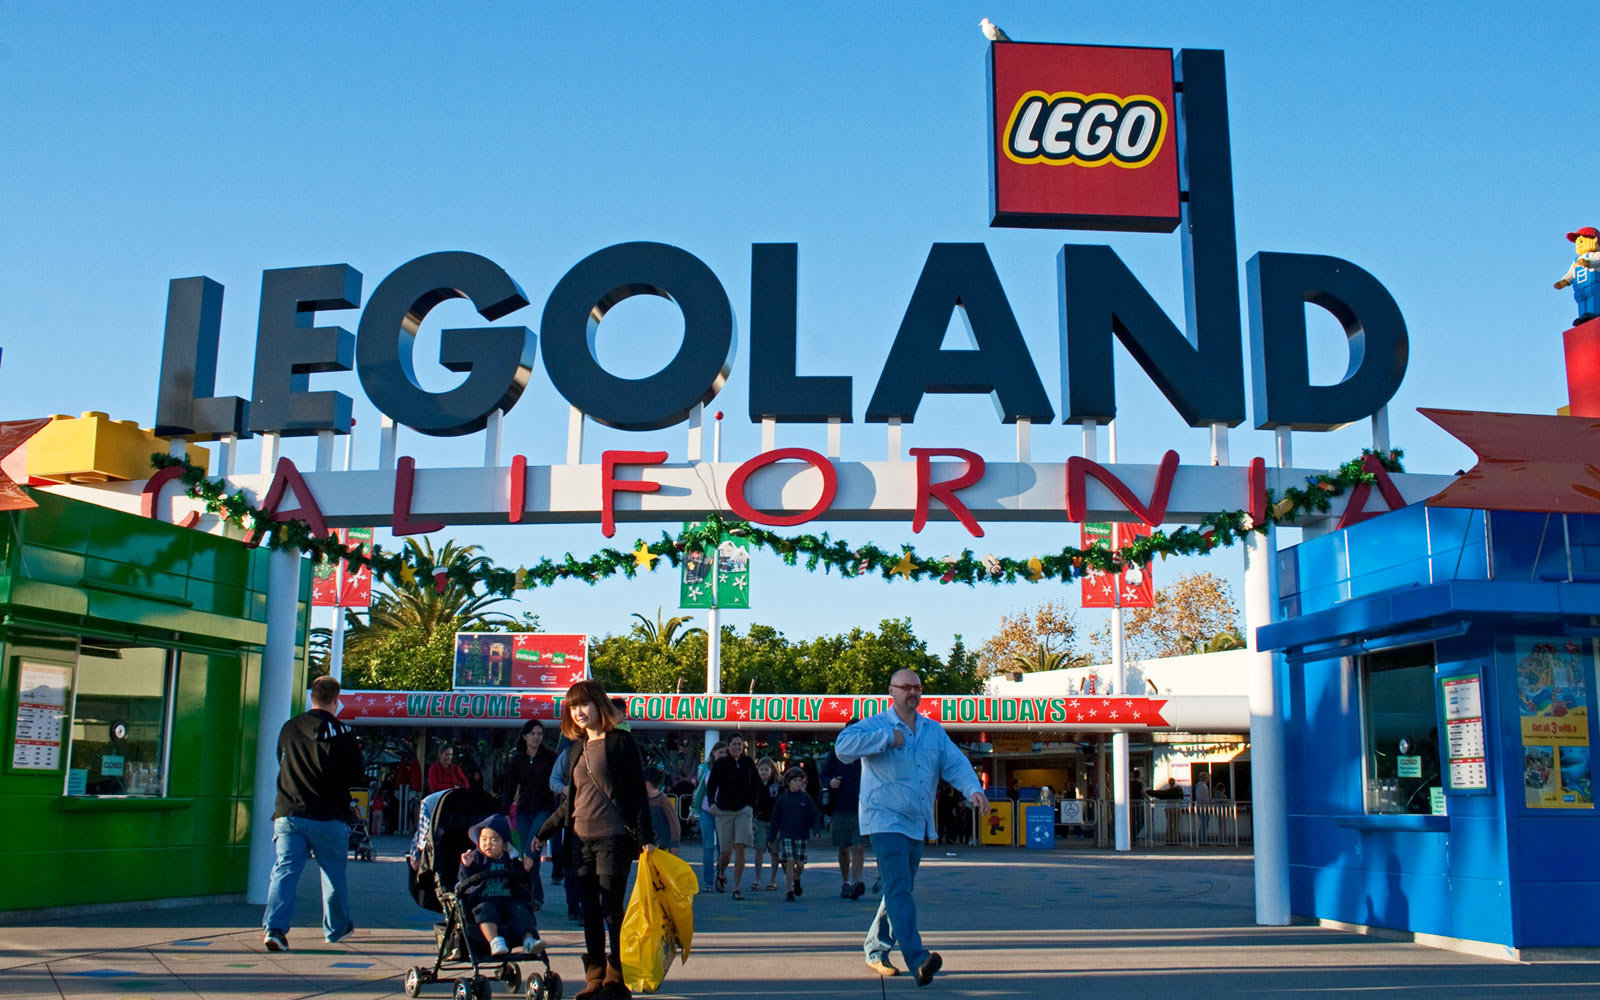 Entrance, Legoland, California